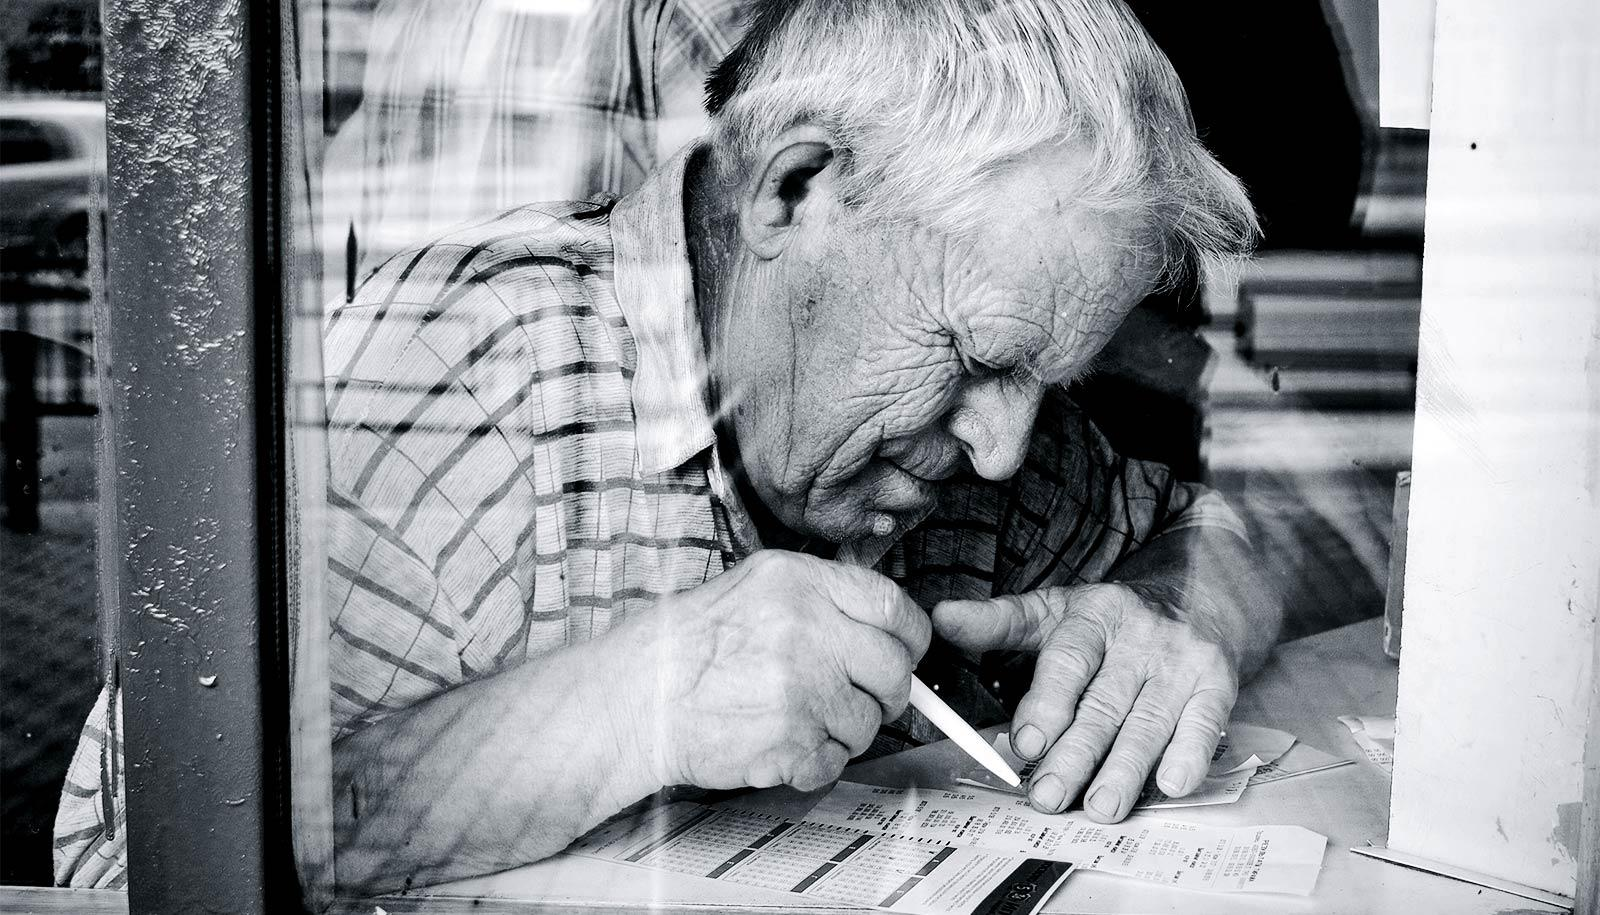 A man leans over a table as he uses a pen to check a lottery ticket